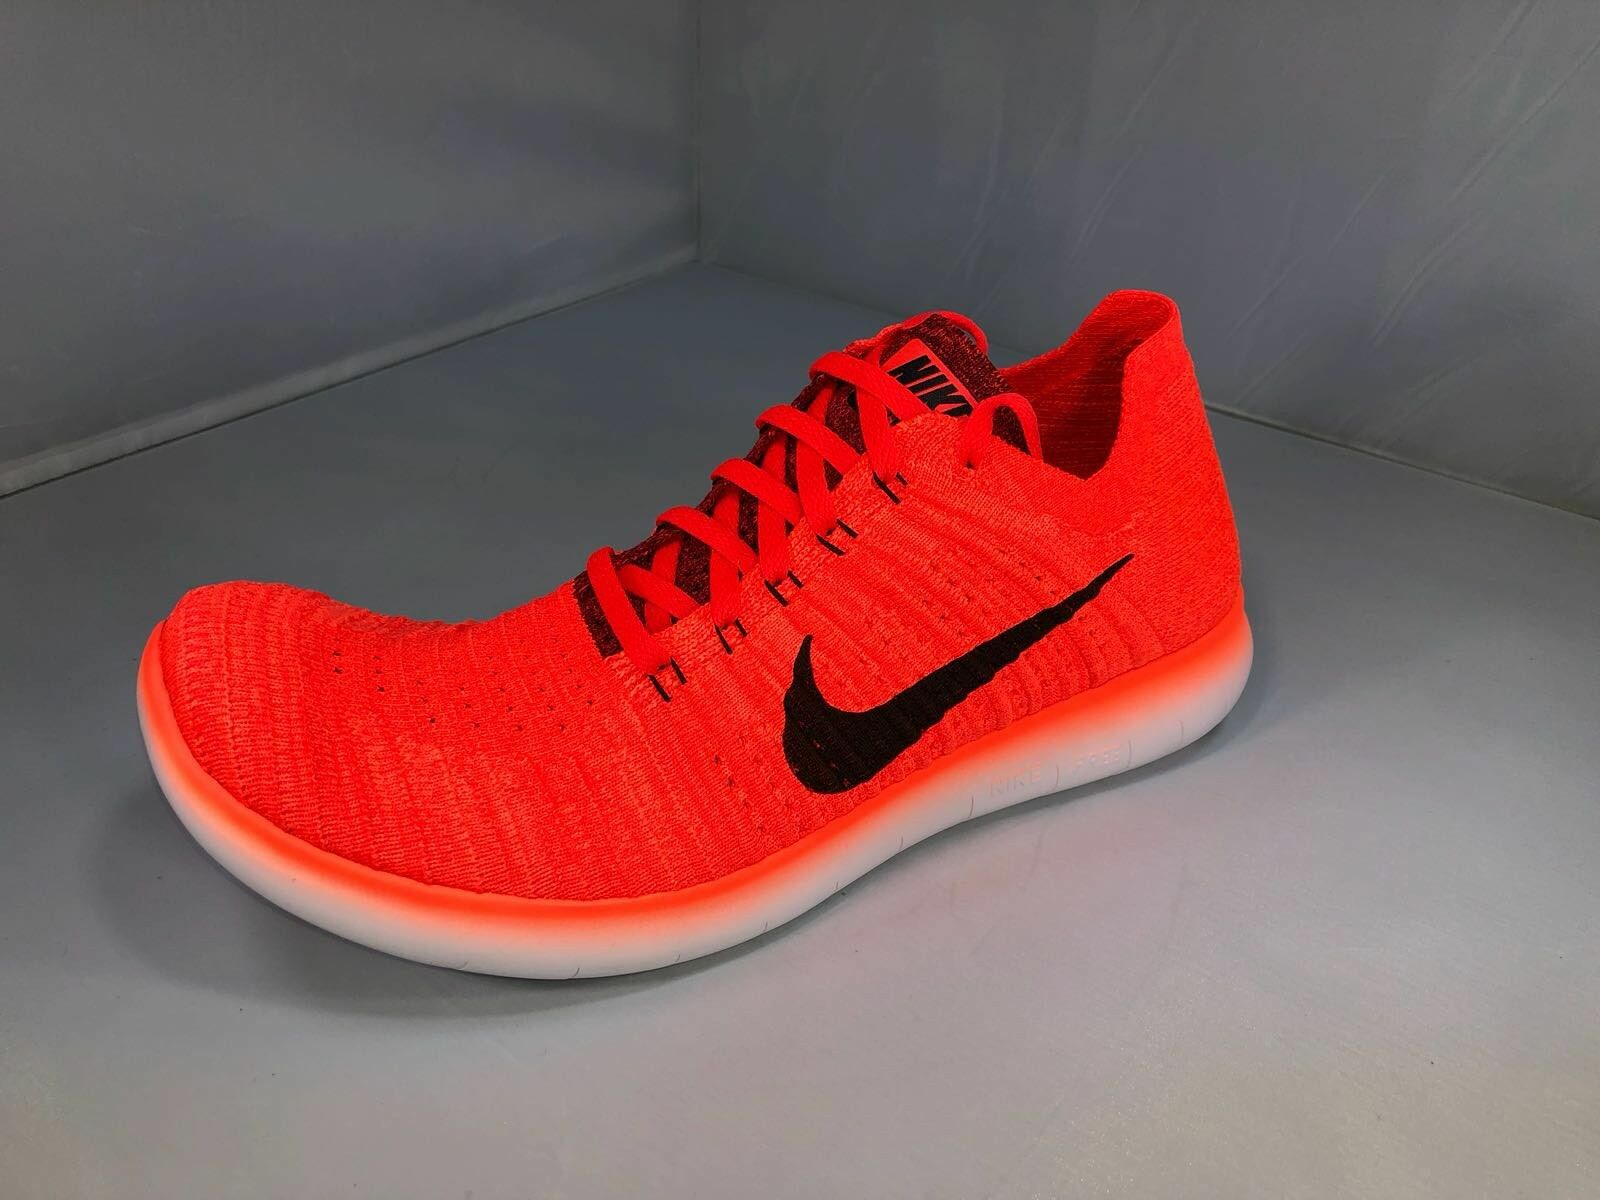 Men's NIKE Free RN Flyknit RUNNING Shoes bright crimson (831069 600) Size 10